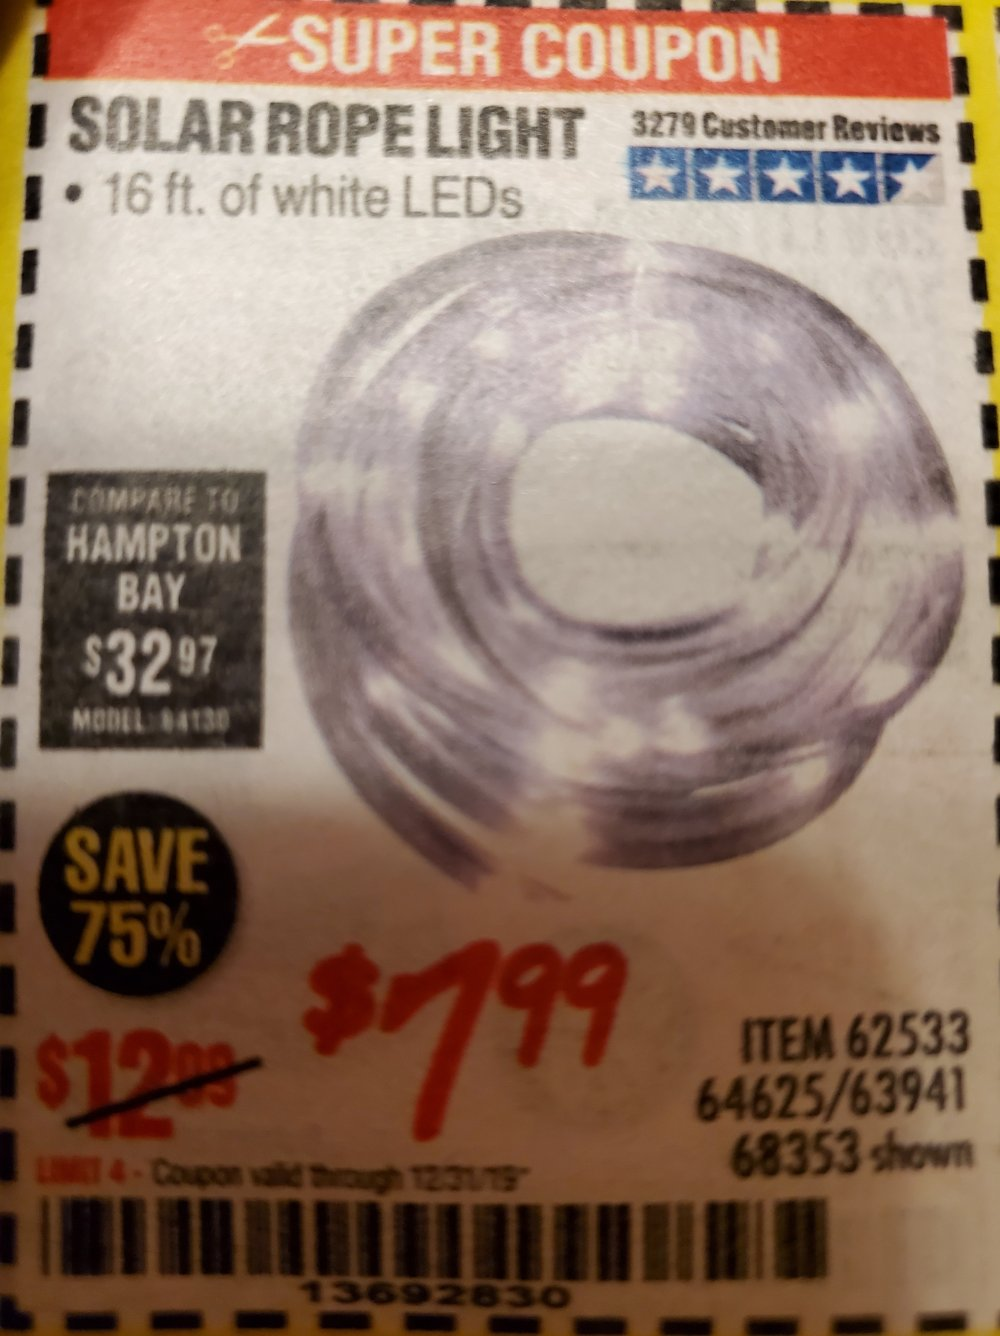 Harbor Freight Coupon, HF Coupons - Solar Rope Light